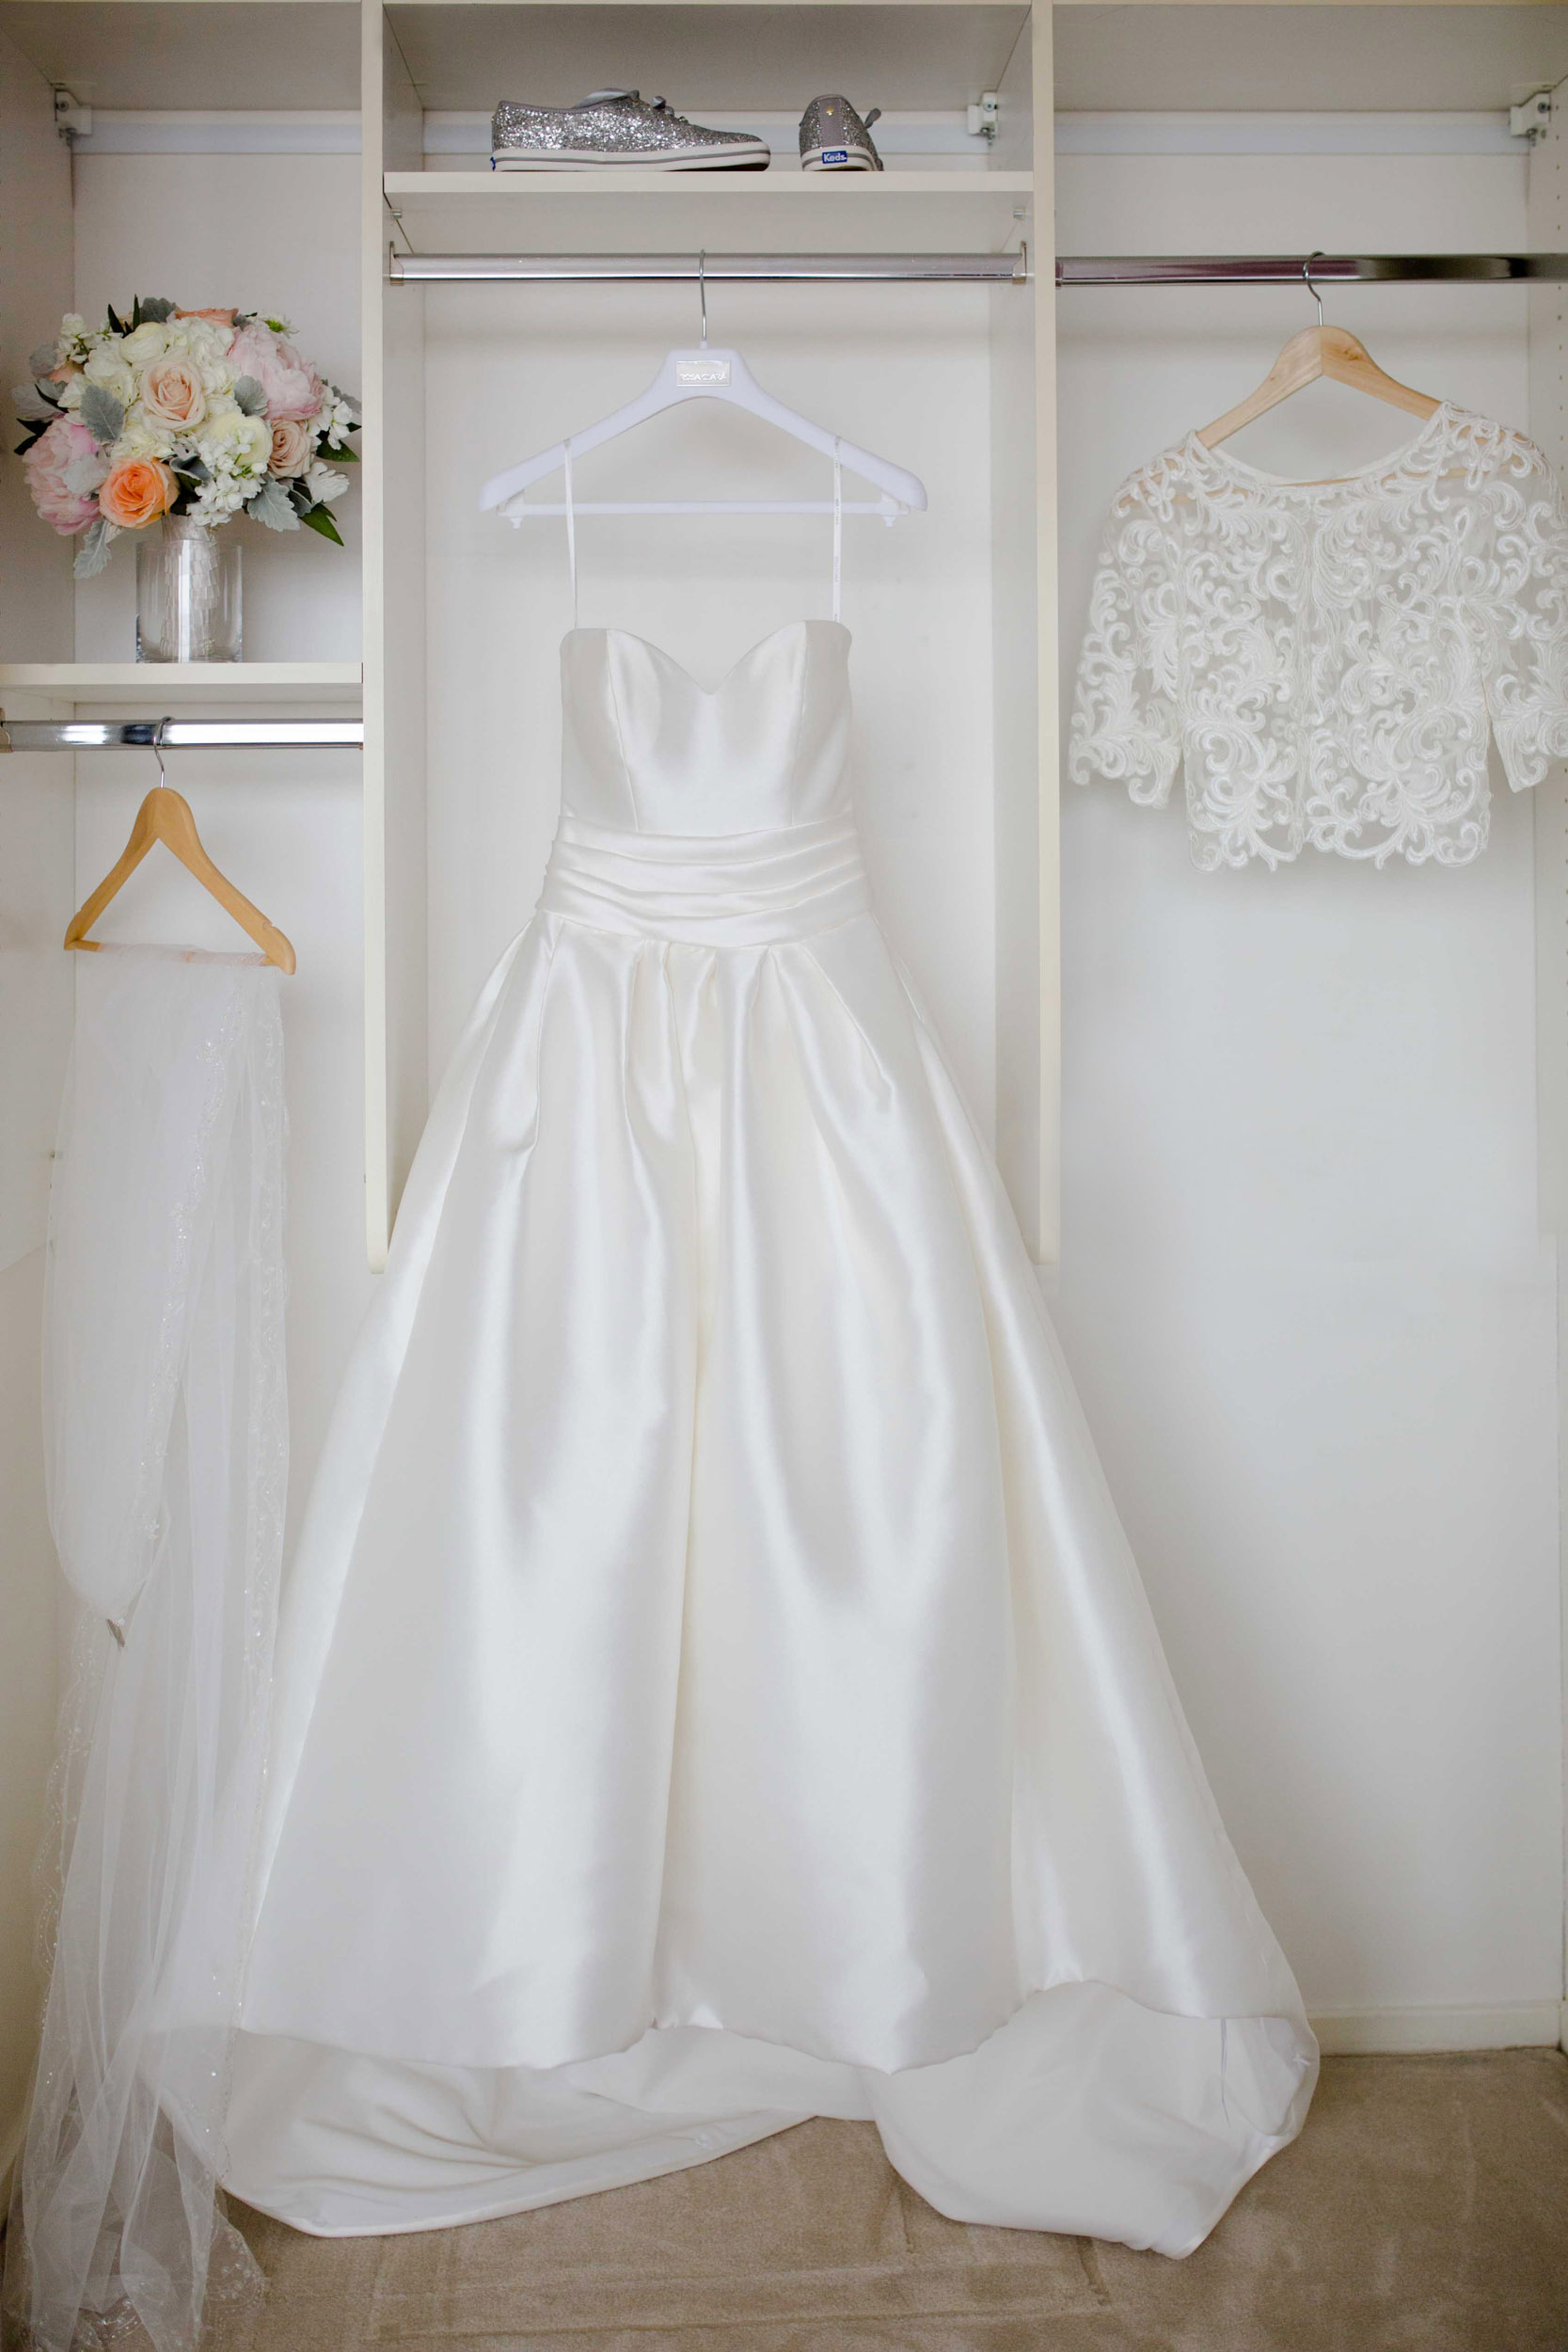 Wedding gown and accessories for Art Institute of Chicago wedding.